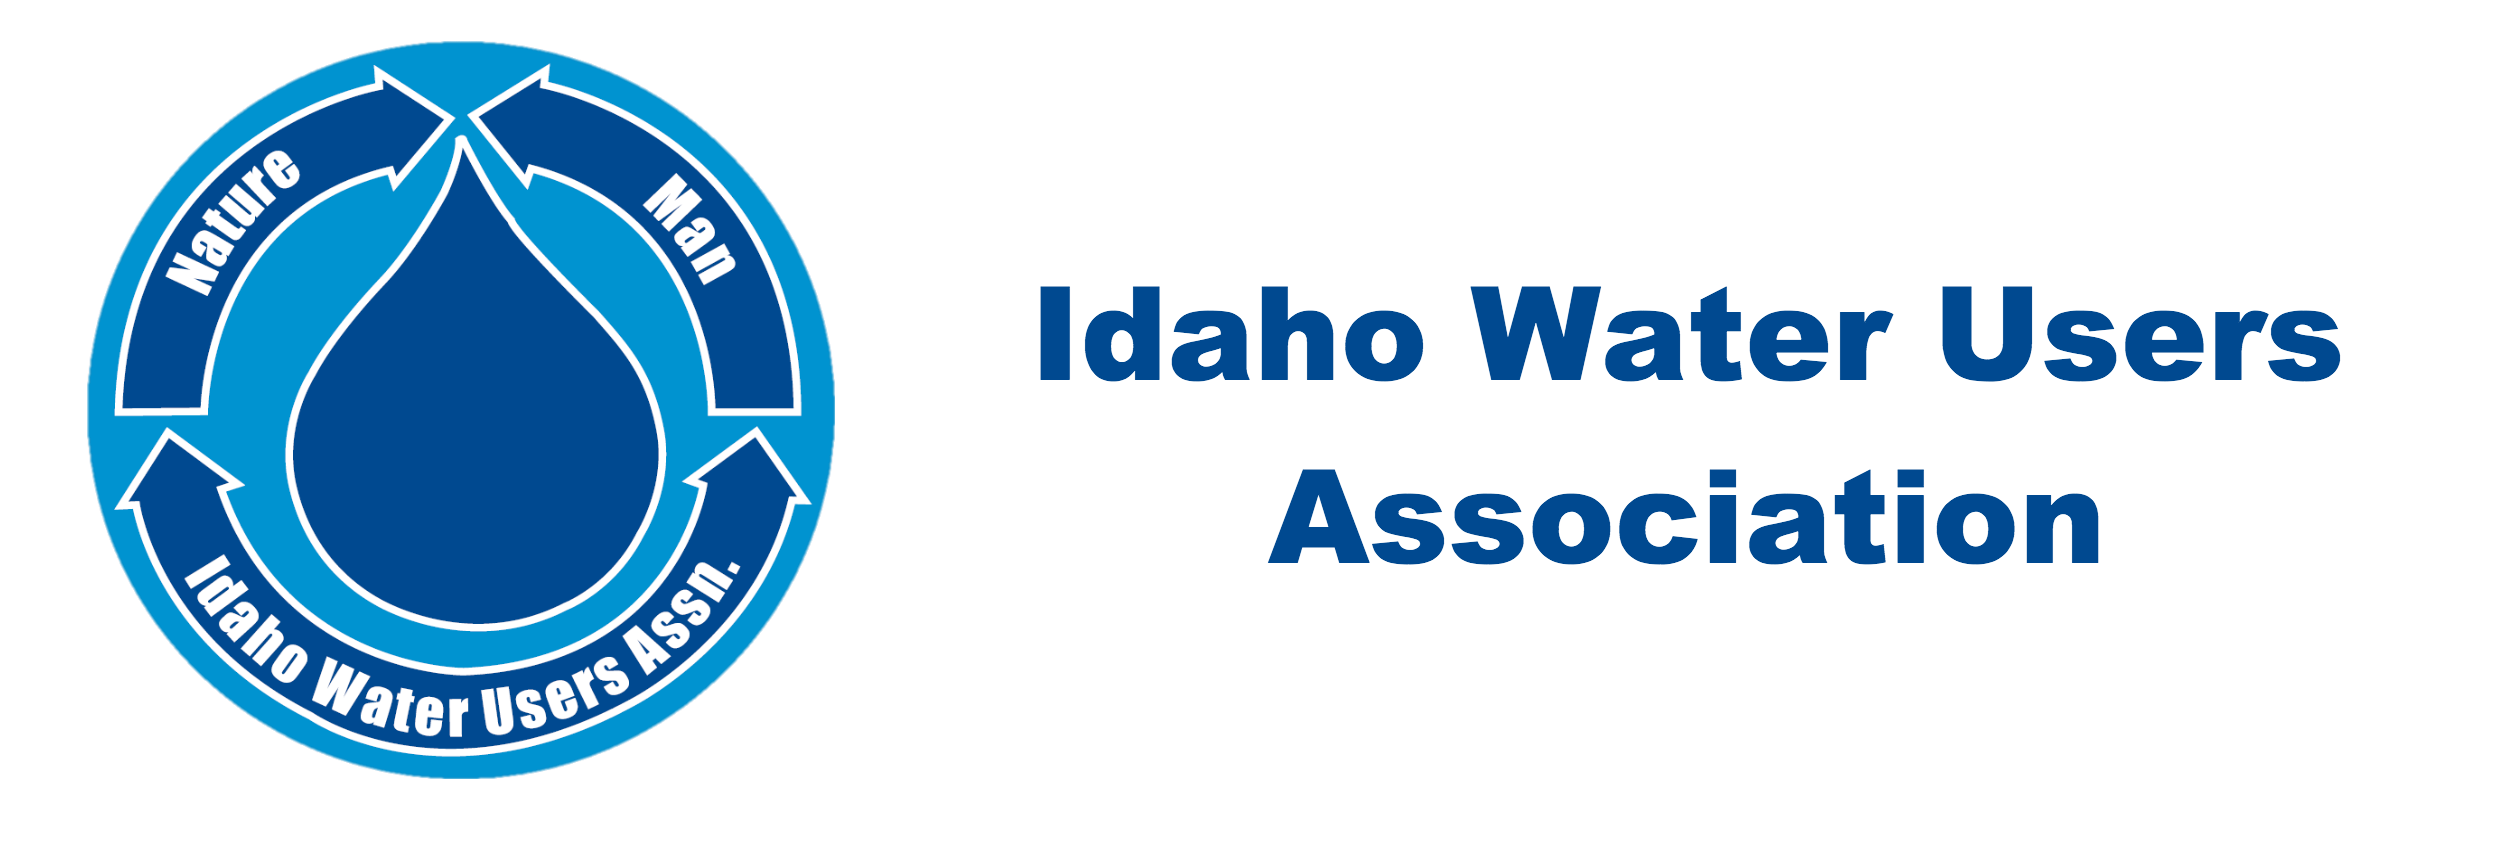 Idaho Water Users Association logo